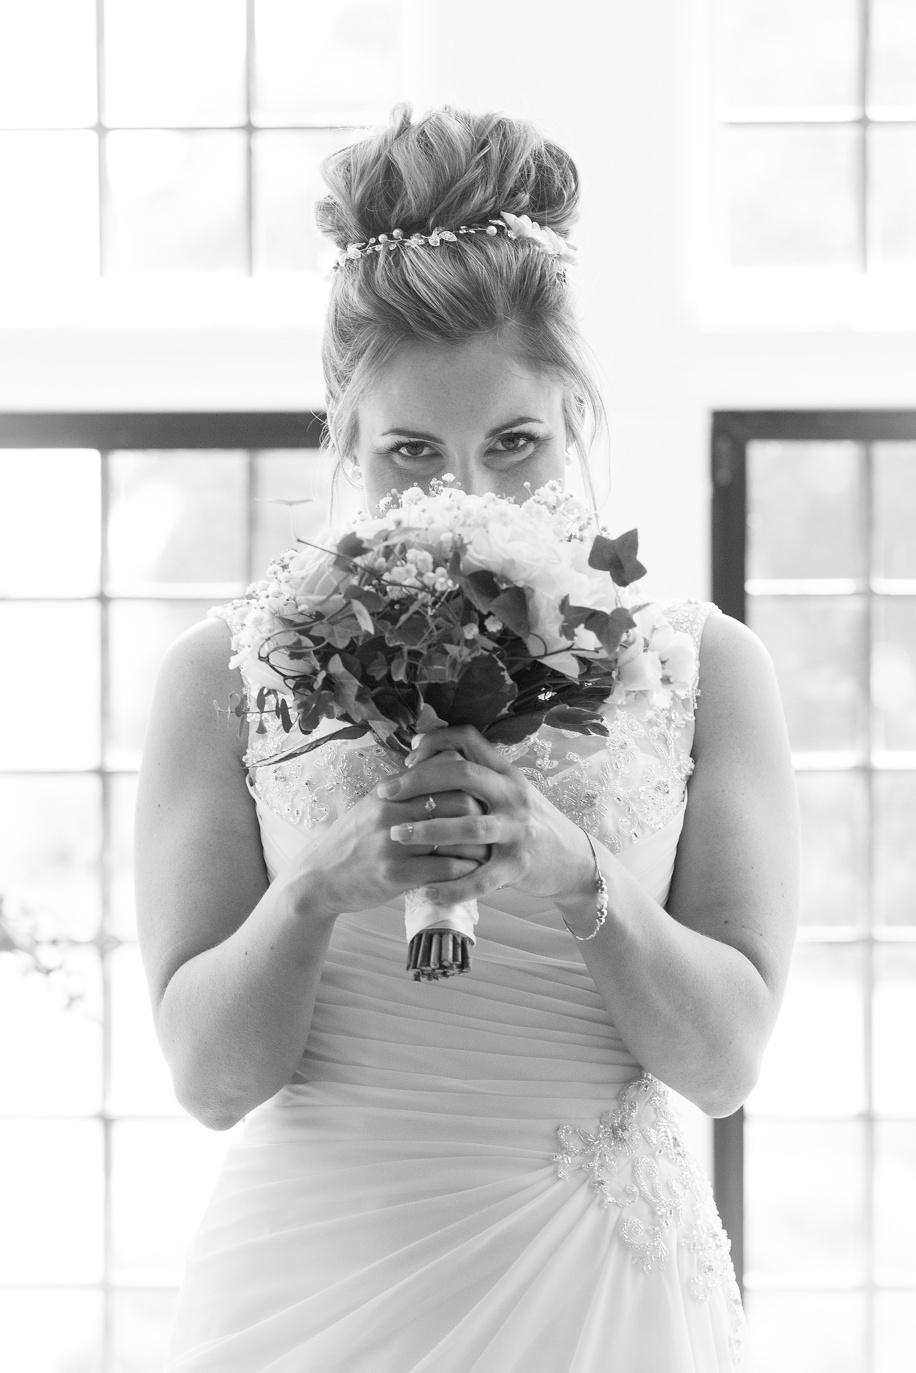 Stunning Bridal portrait - New Forest wedding at Rhinefield House - Martin Bell Photography